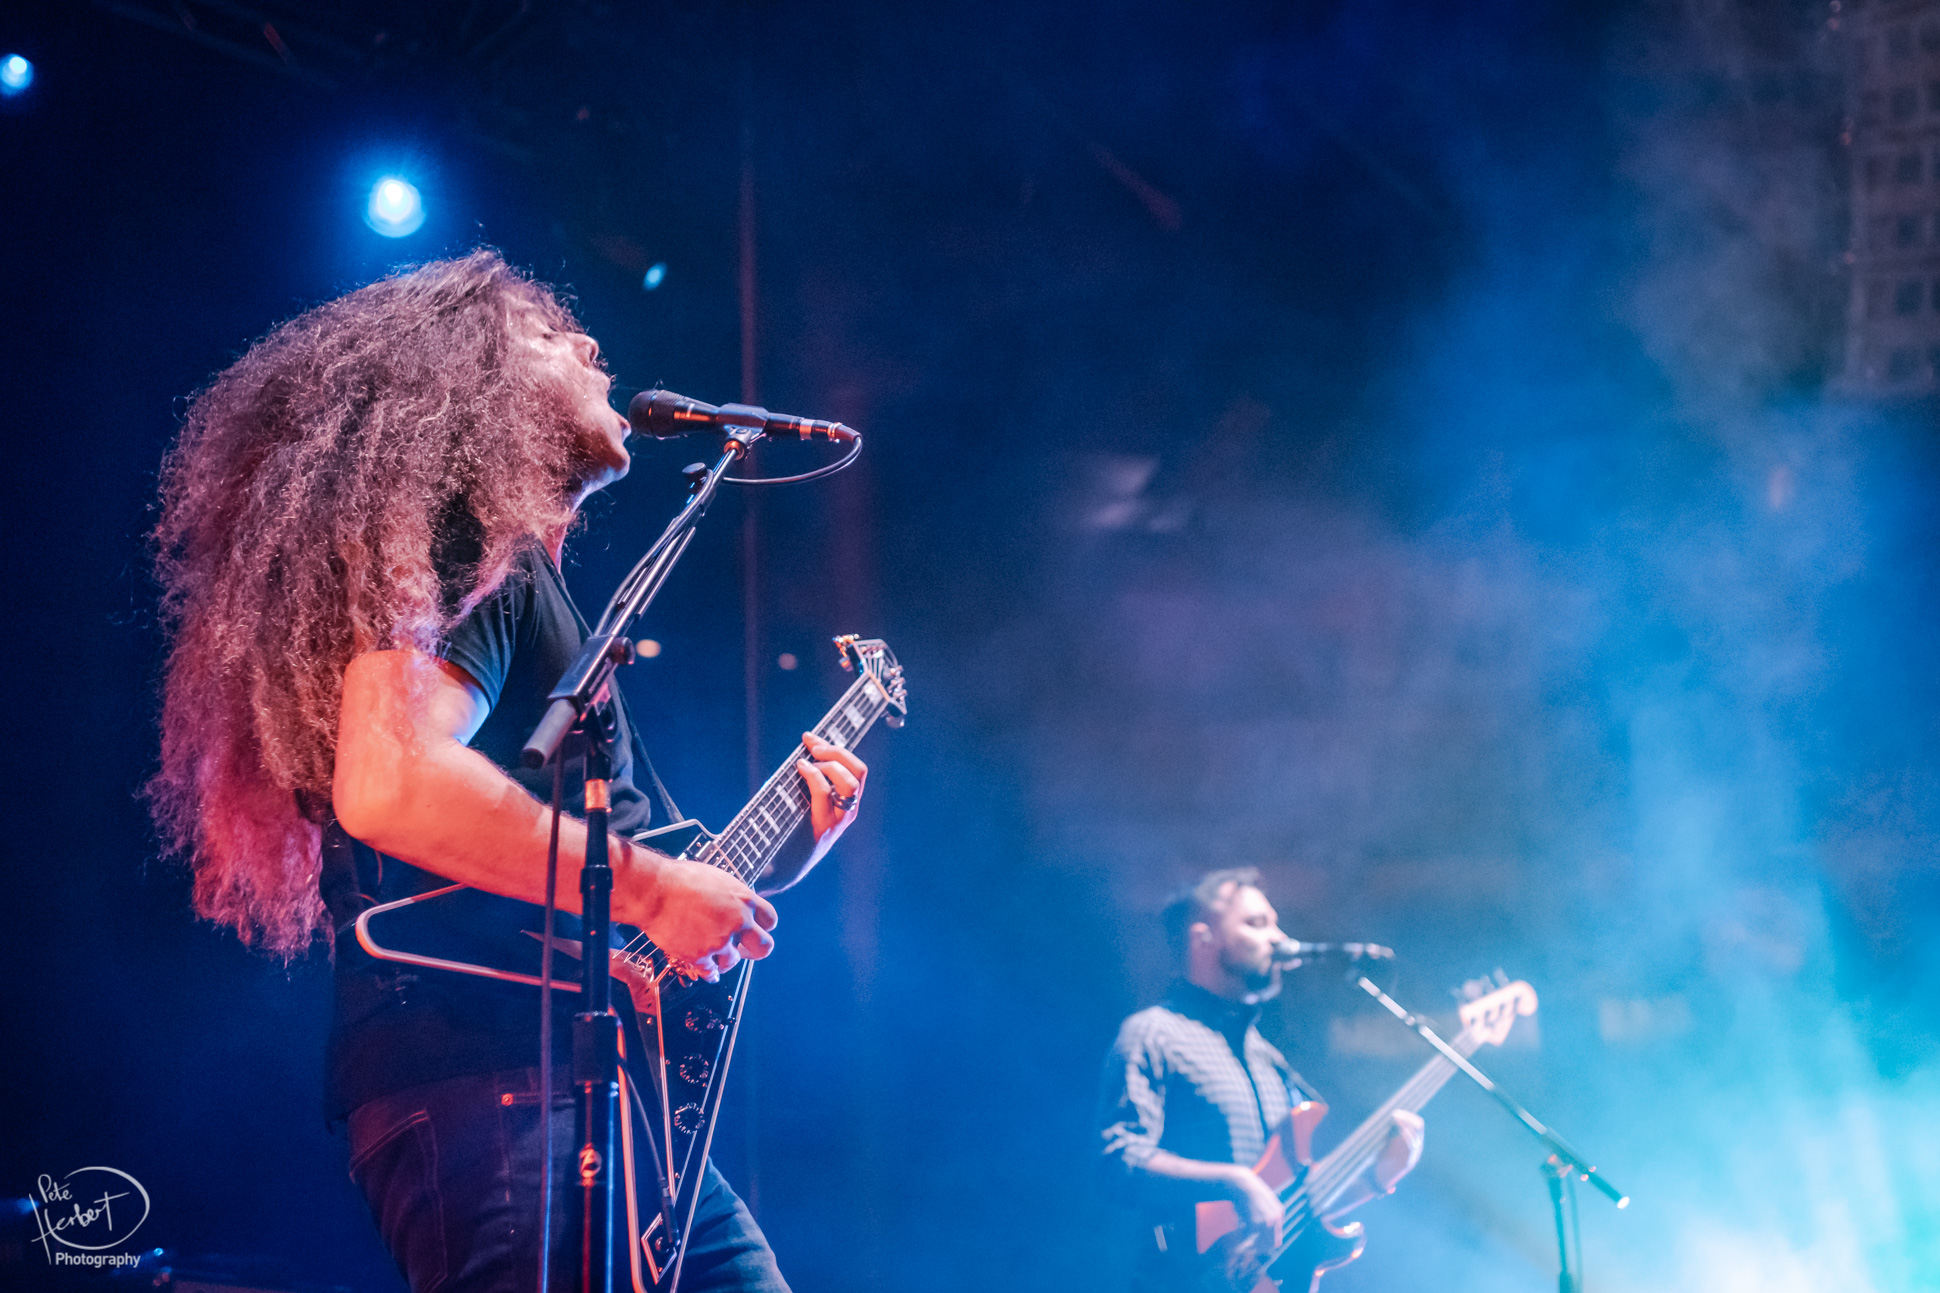 Coheed & Cambria - The Roundhouse - 16.10.18 - London-14.JPG